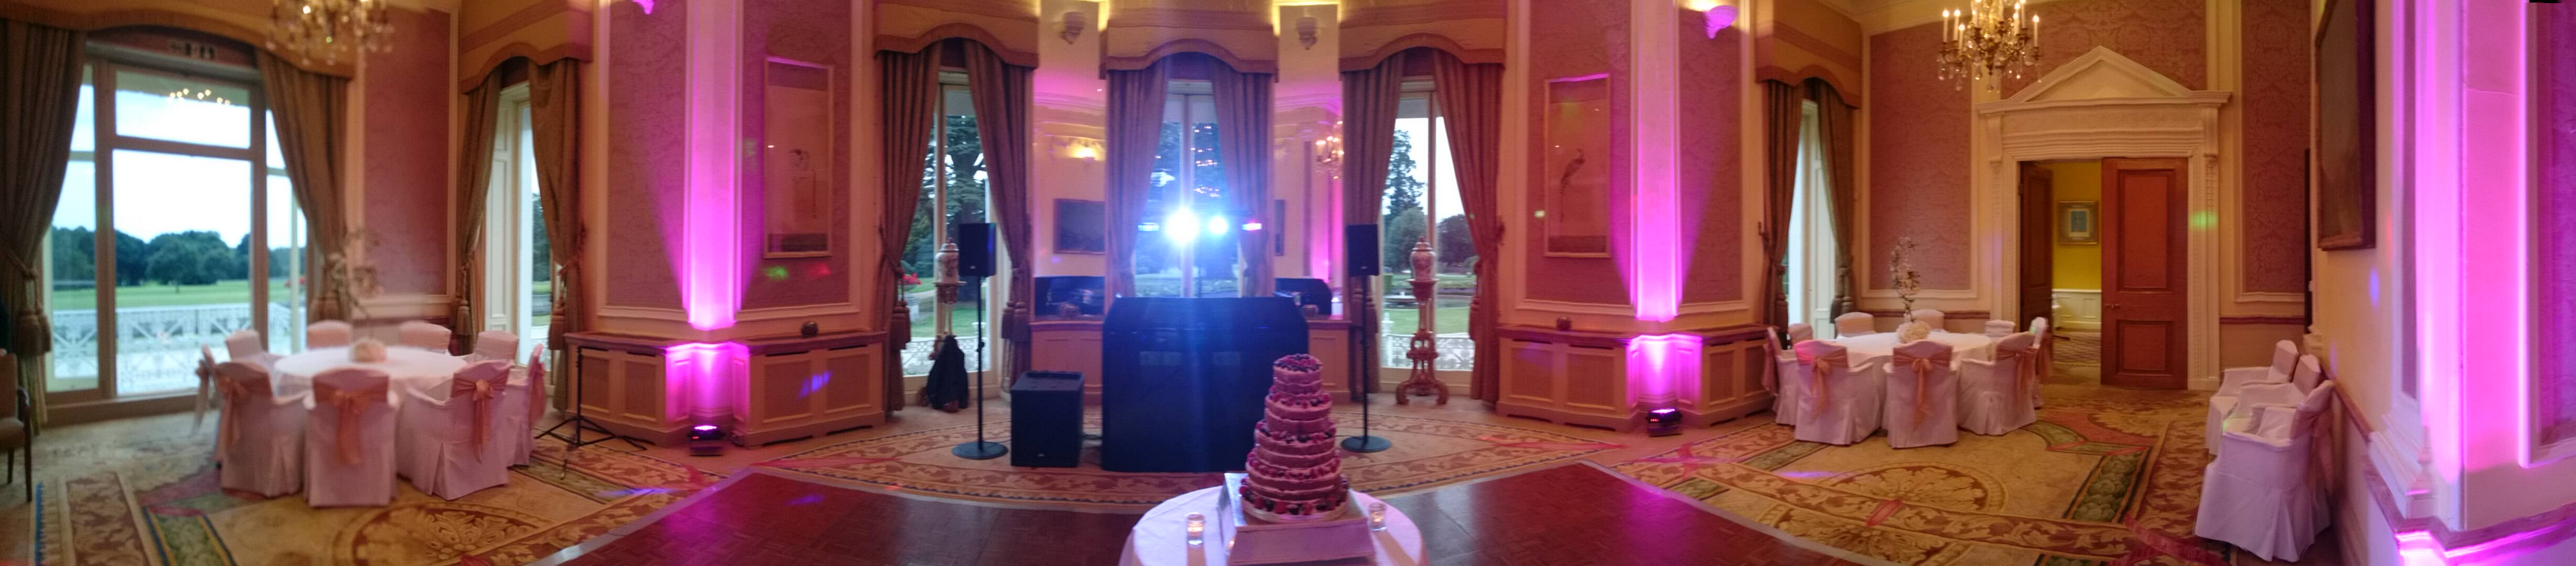 Wedding Cake and Setup